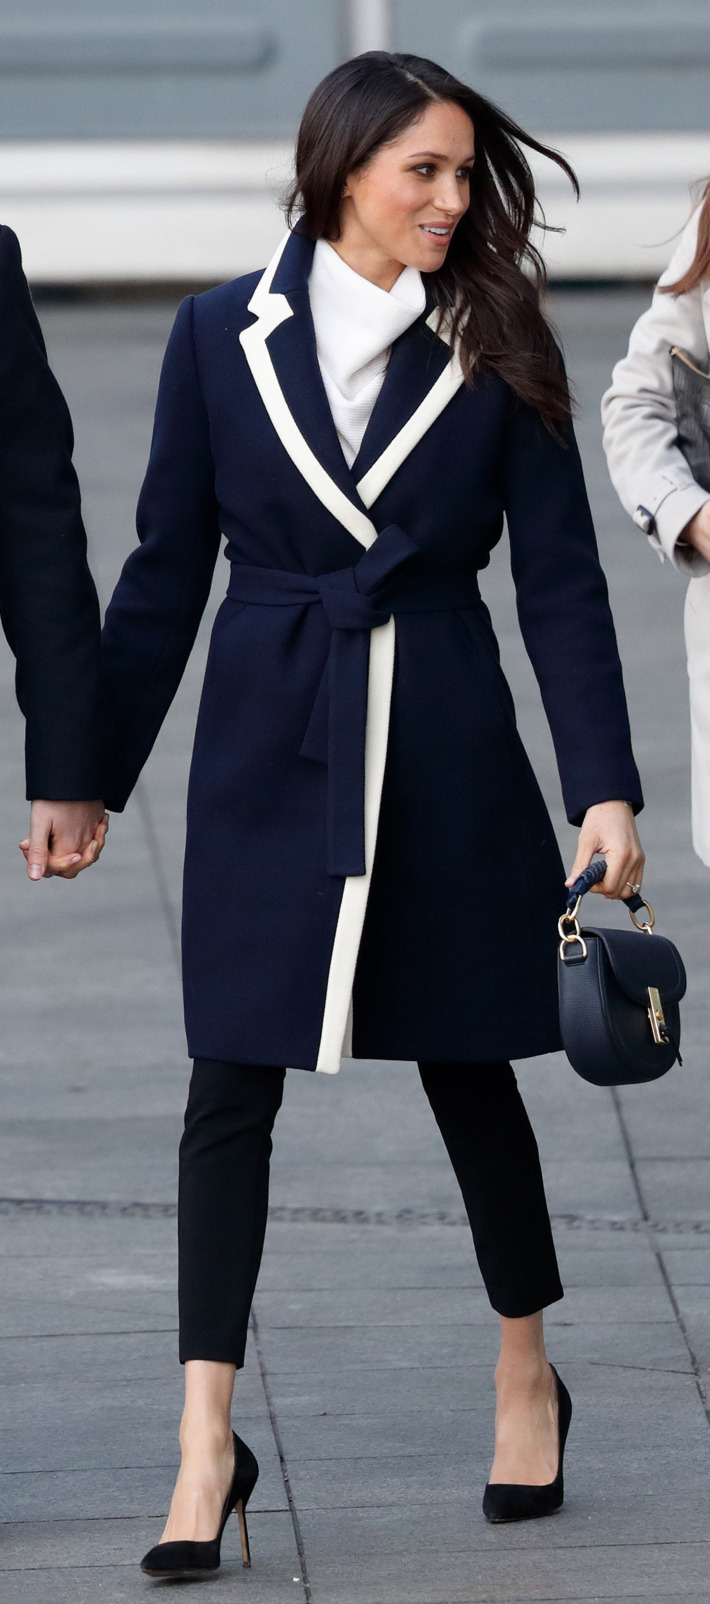 A Definitive Ranking of Meghan Markle's Power Coats